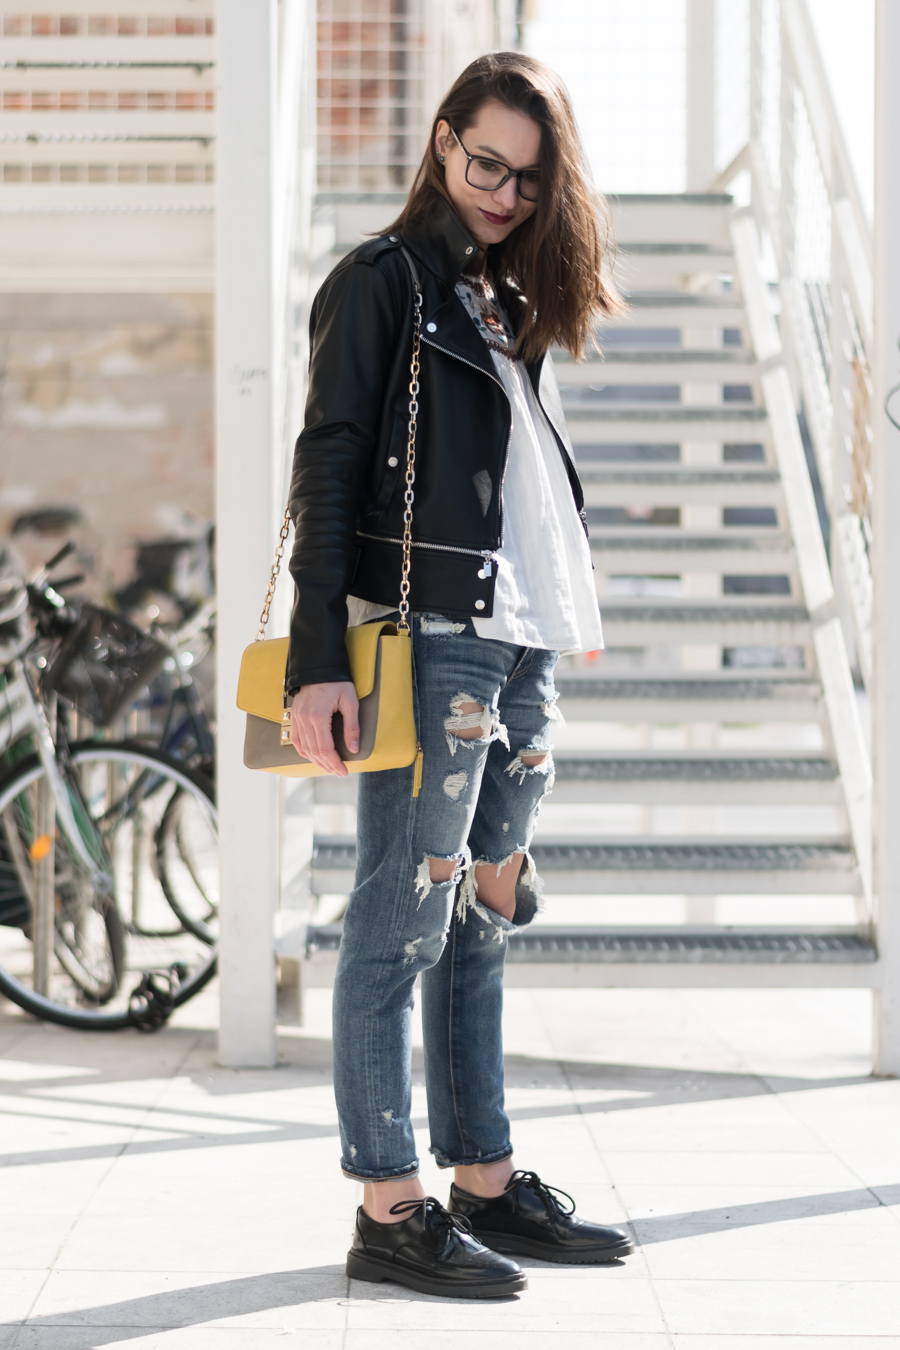 black leather jacket, white bohemian blouse, ripped jeans and oxford shoes, liujo bag, designer bag, style blogger